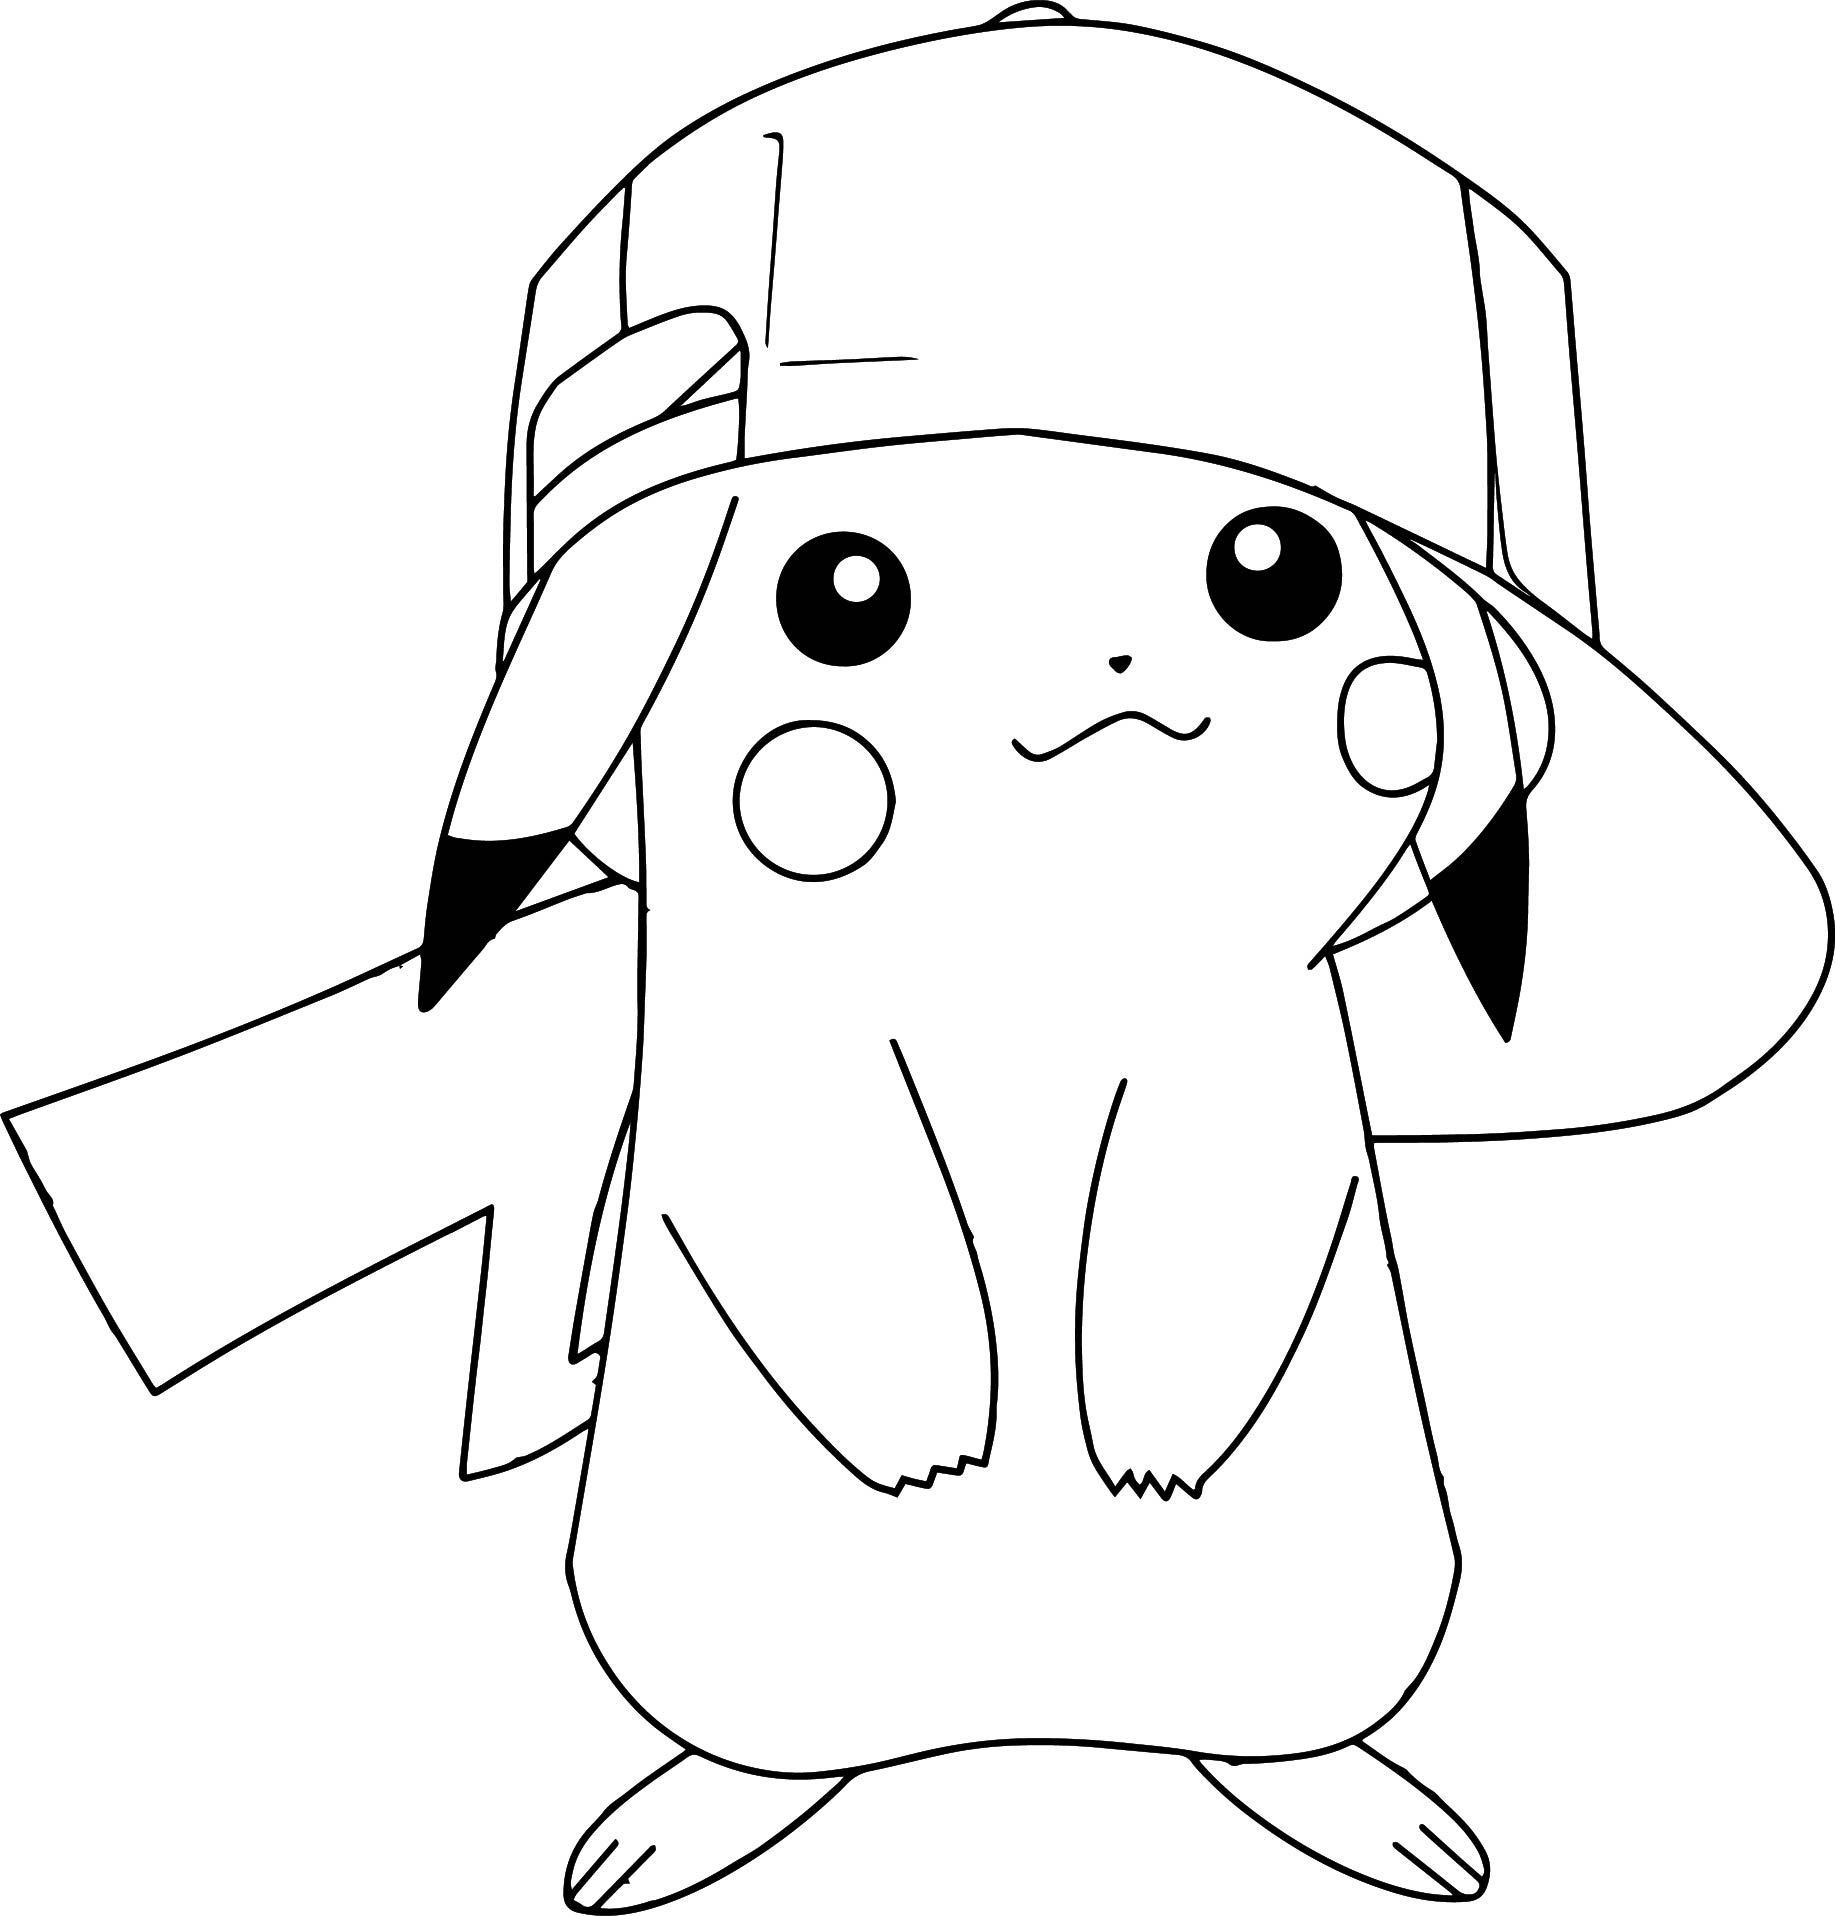 Pikachu With A Hat Coloring Page Bubakids Com Bubakids Com In 2020 Pikachu Coloring Page Cartoon Coloring Pages Pokemon Coloring Pages